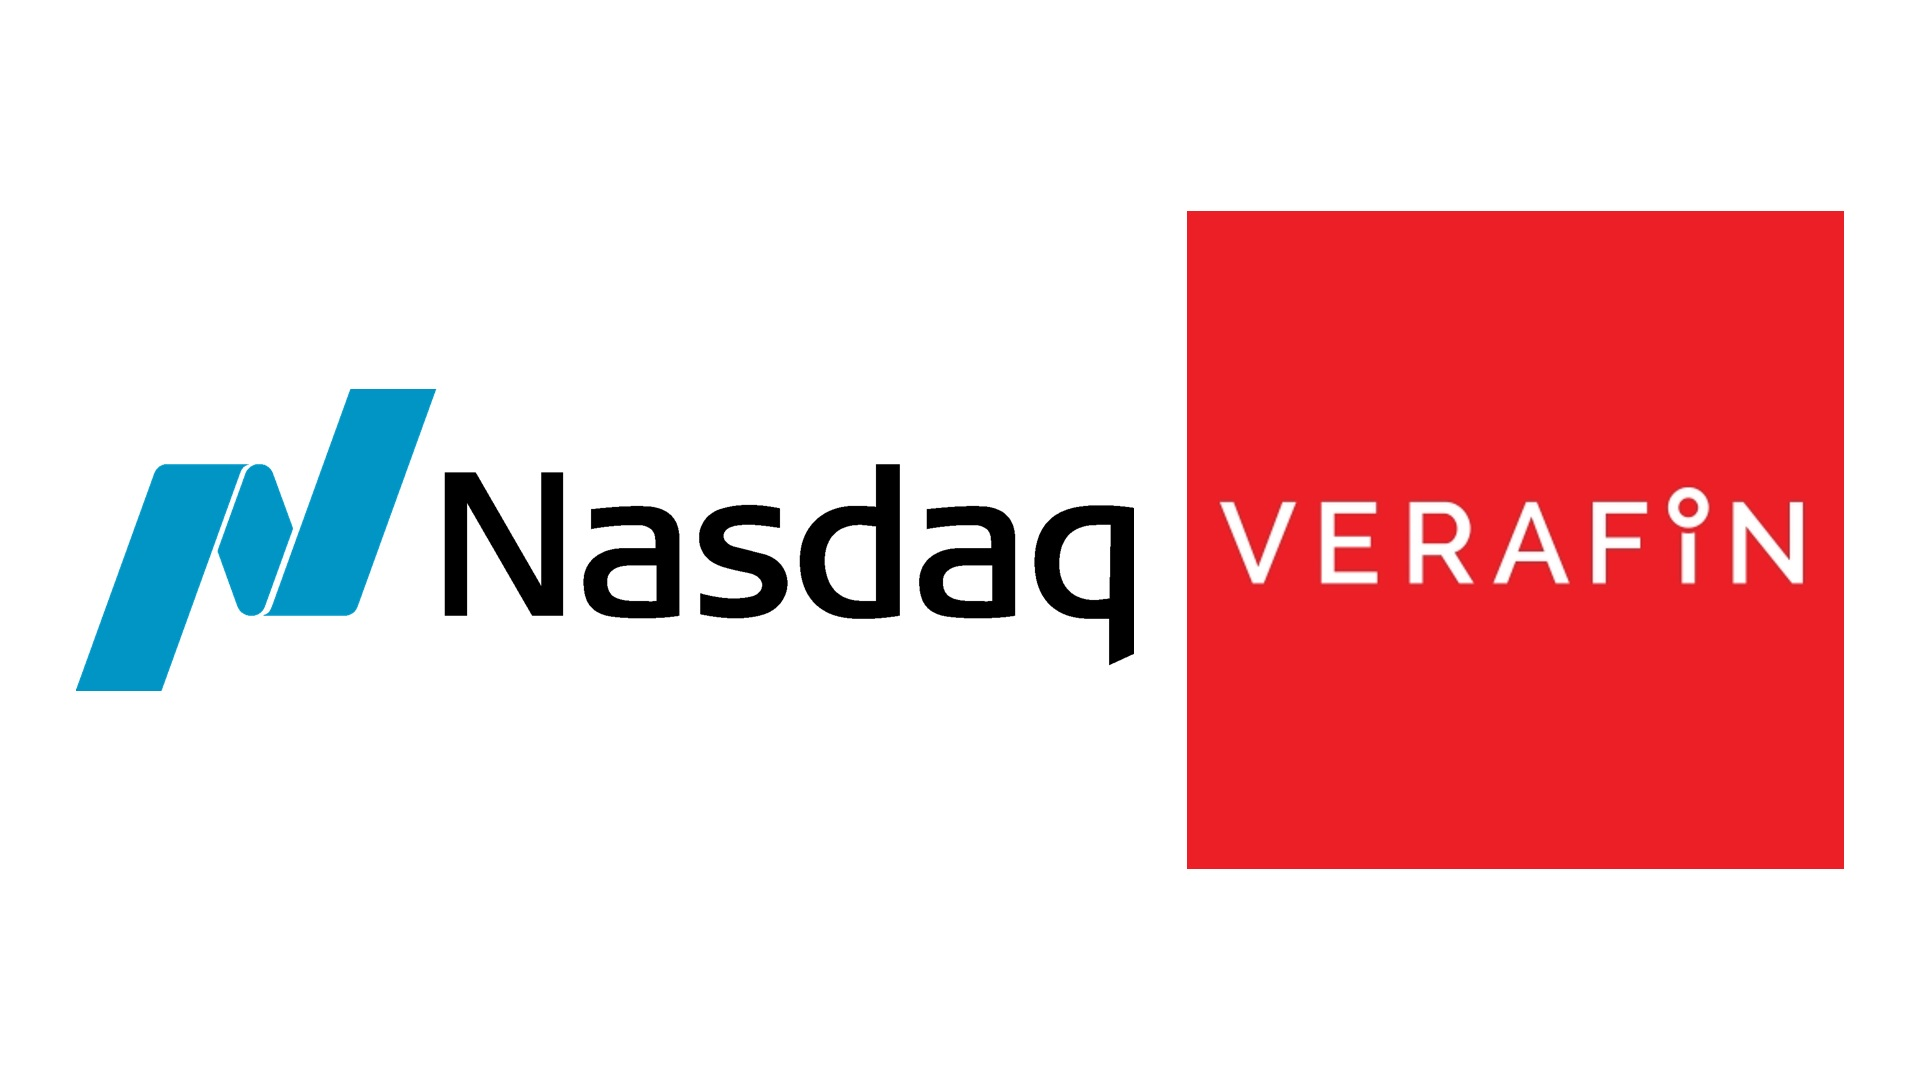 NASDAQ acquires Verafin